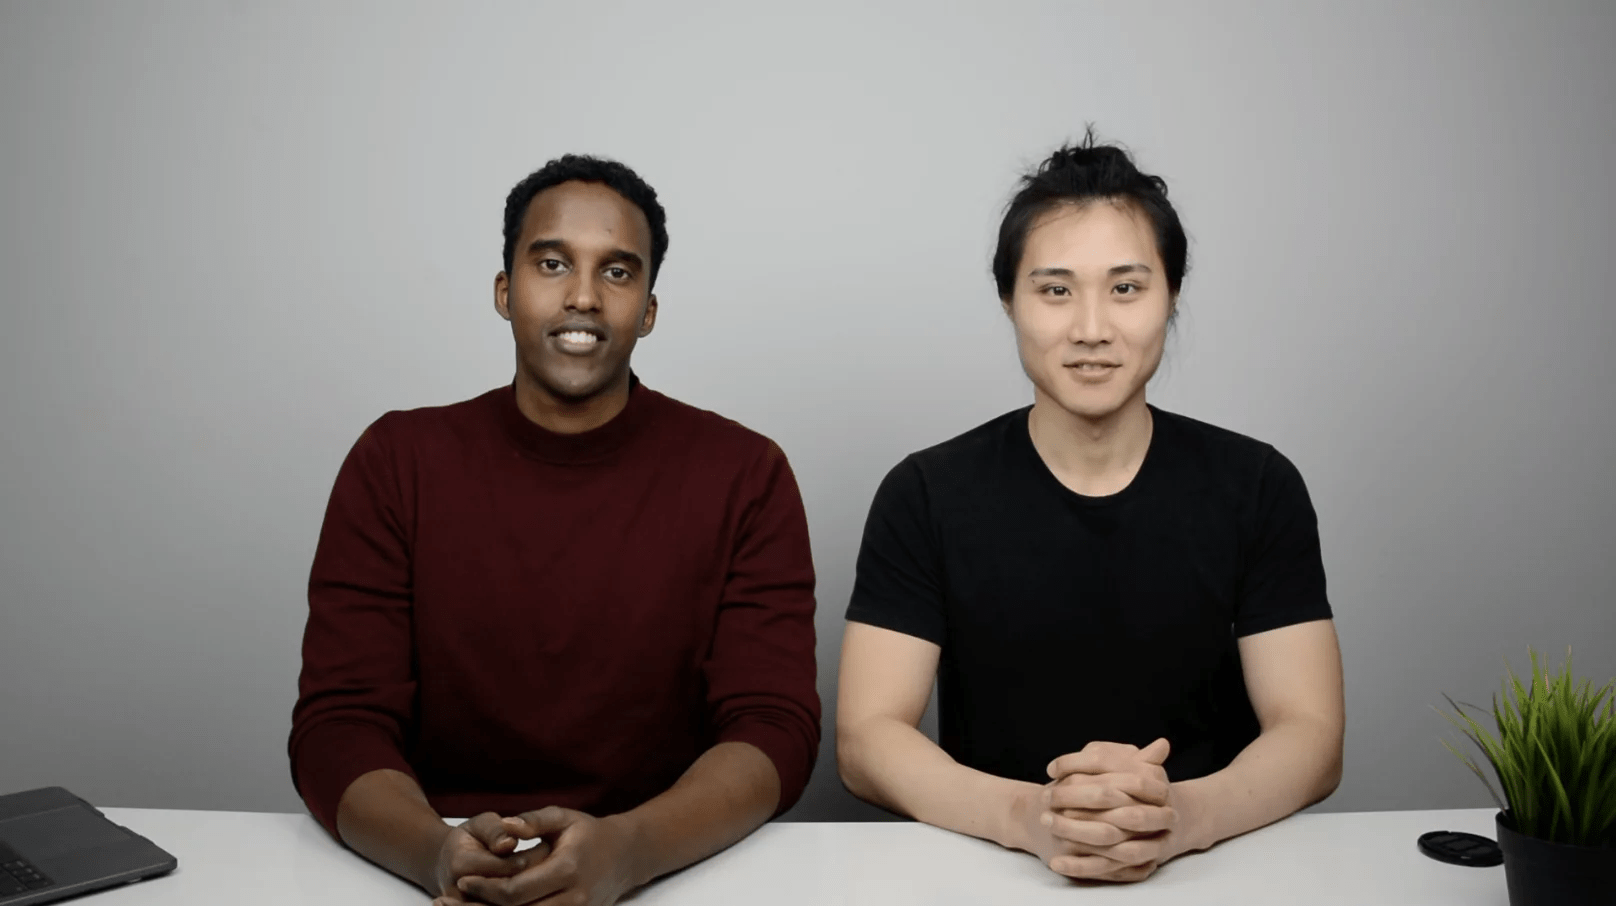 In-person video of Jing and Hassan